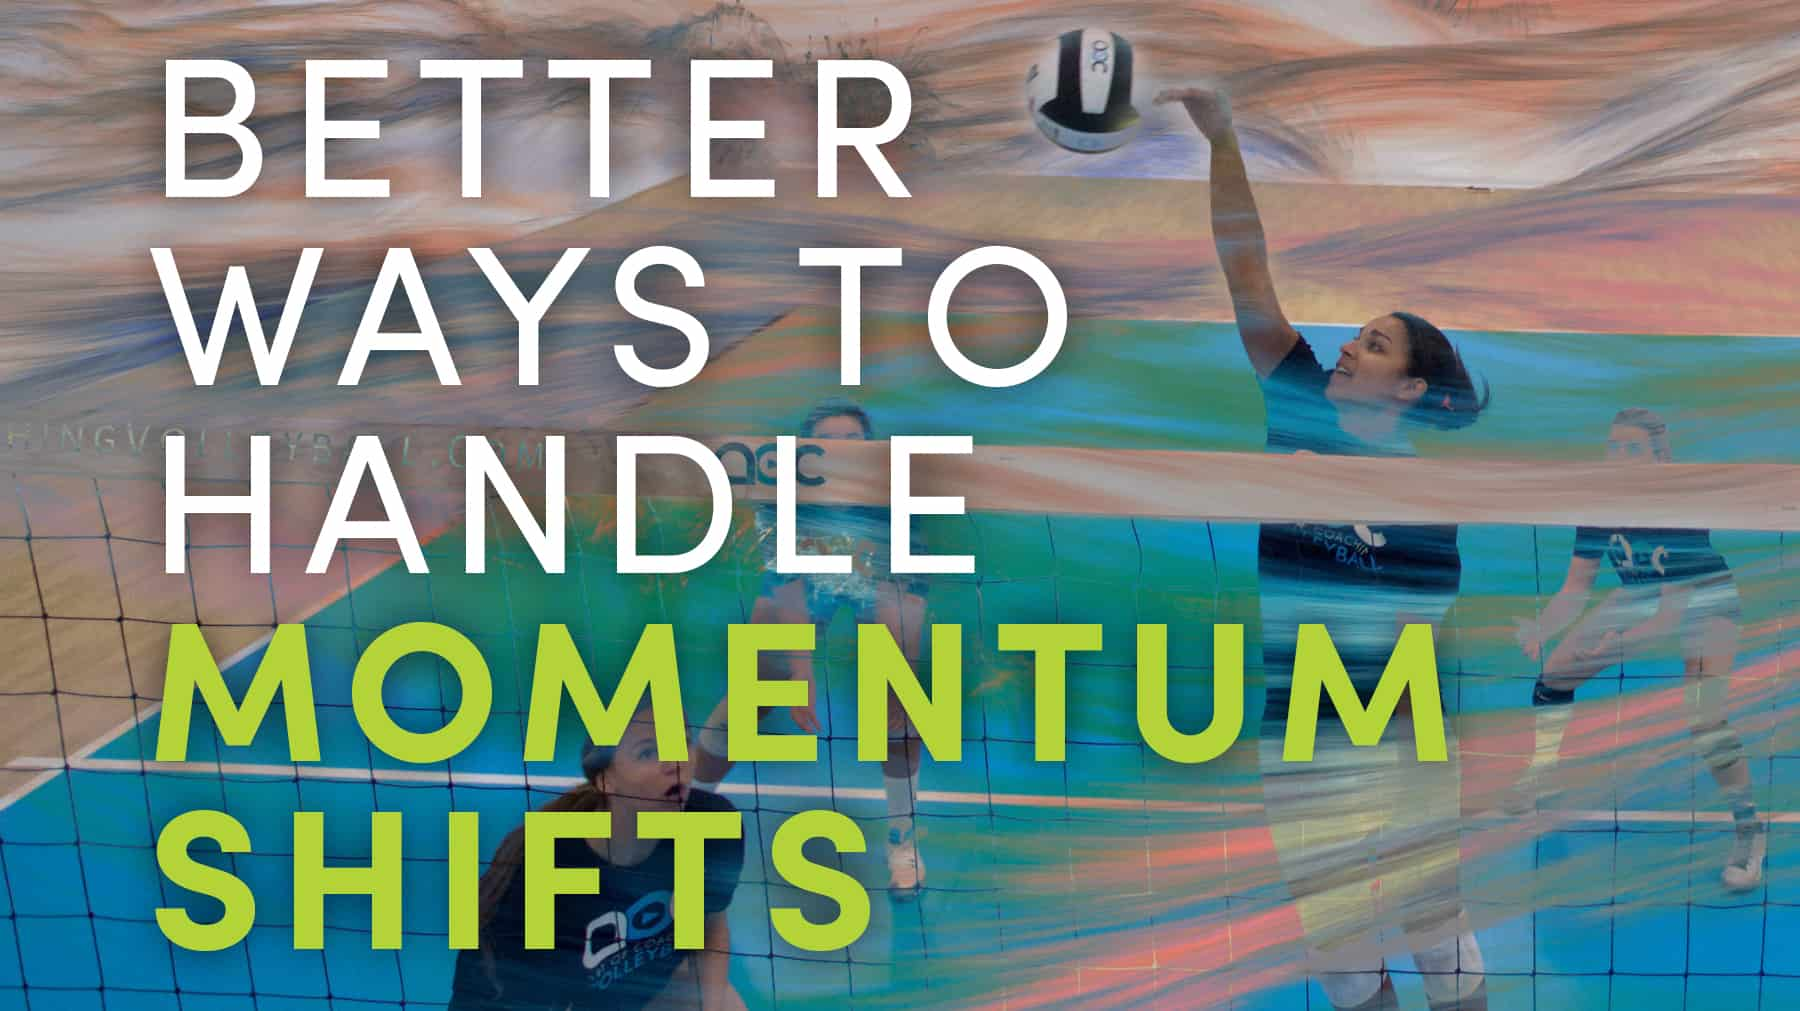 Better ways to handle momentum shifts